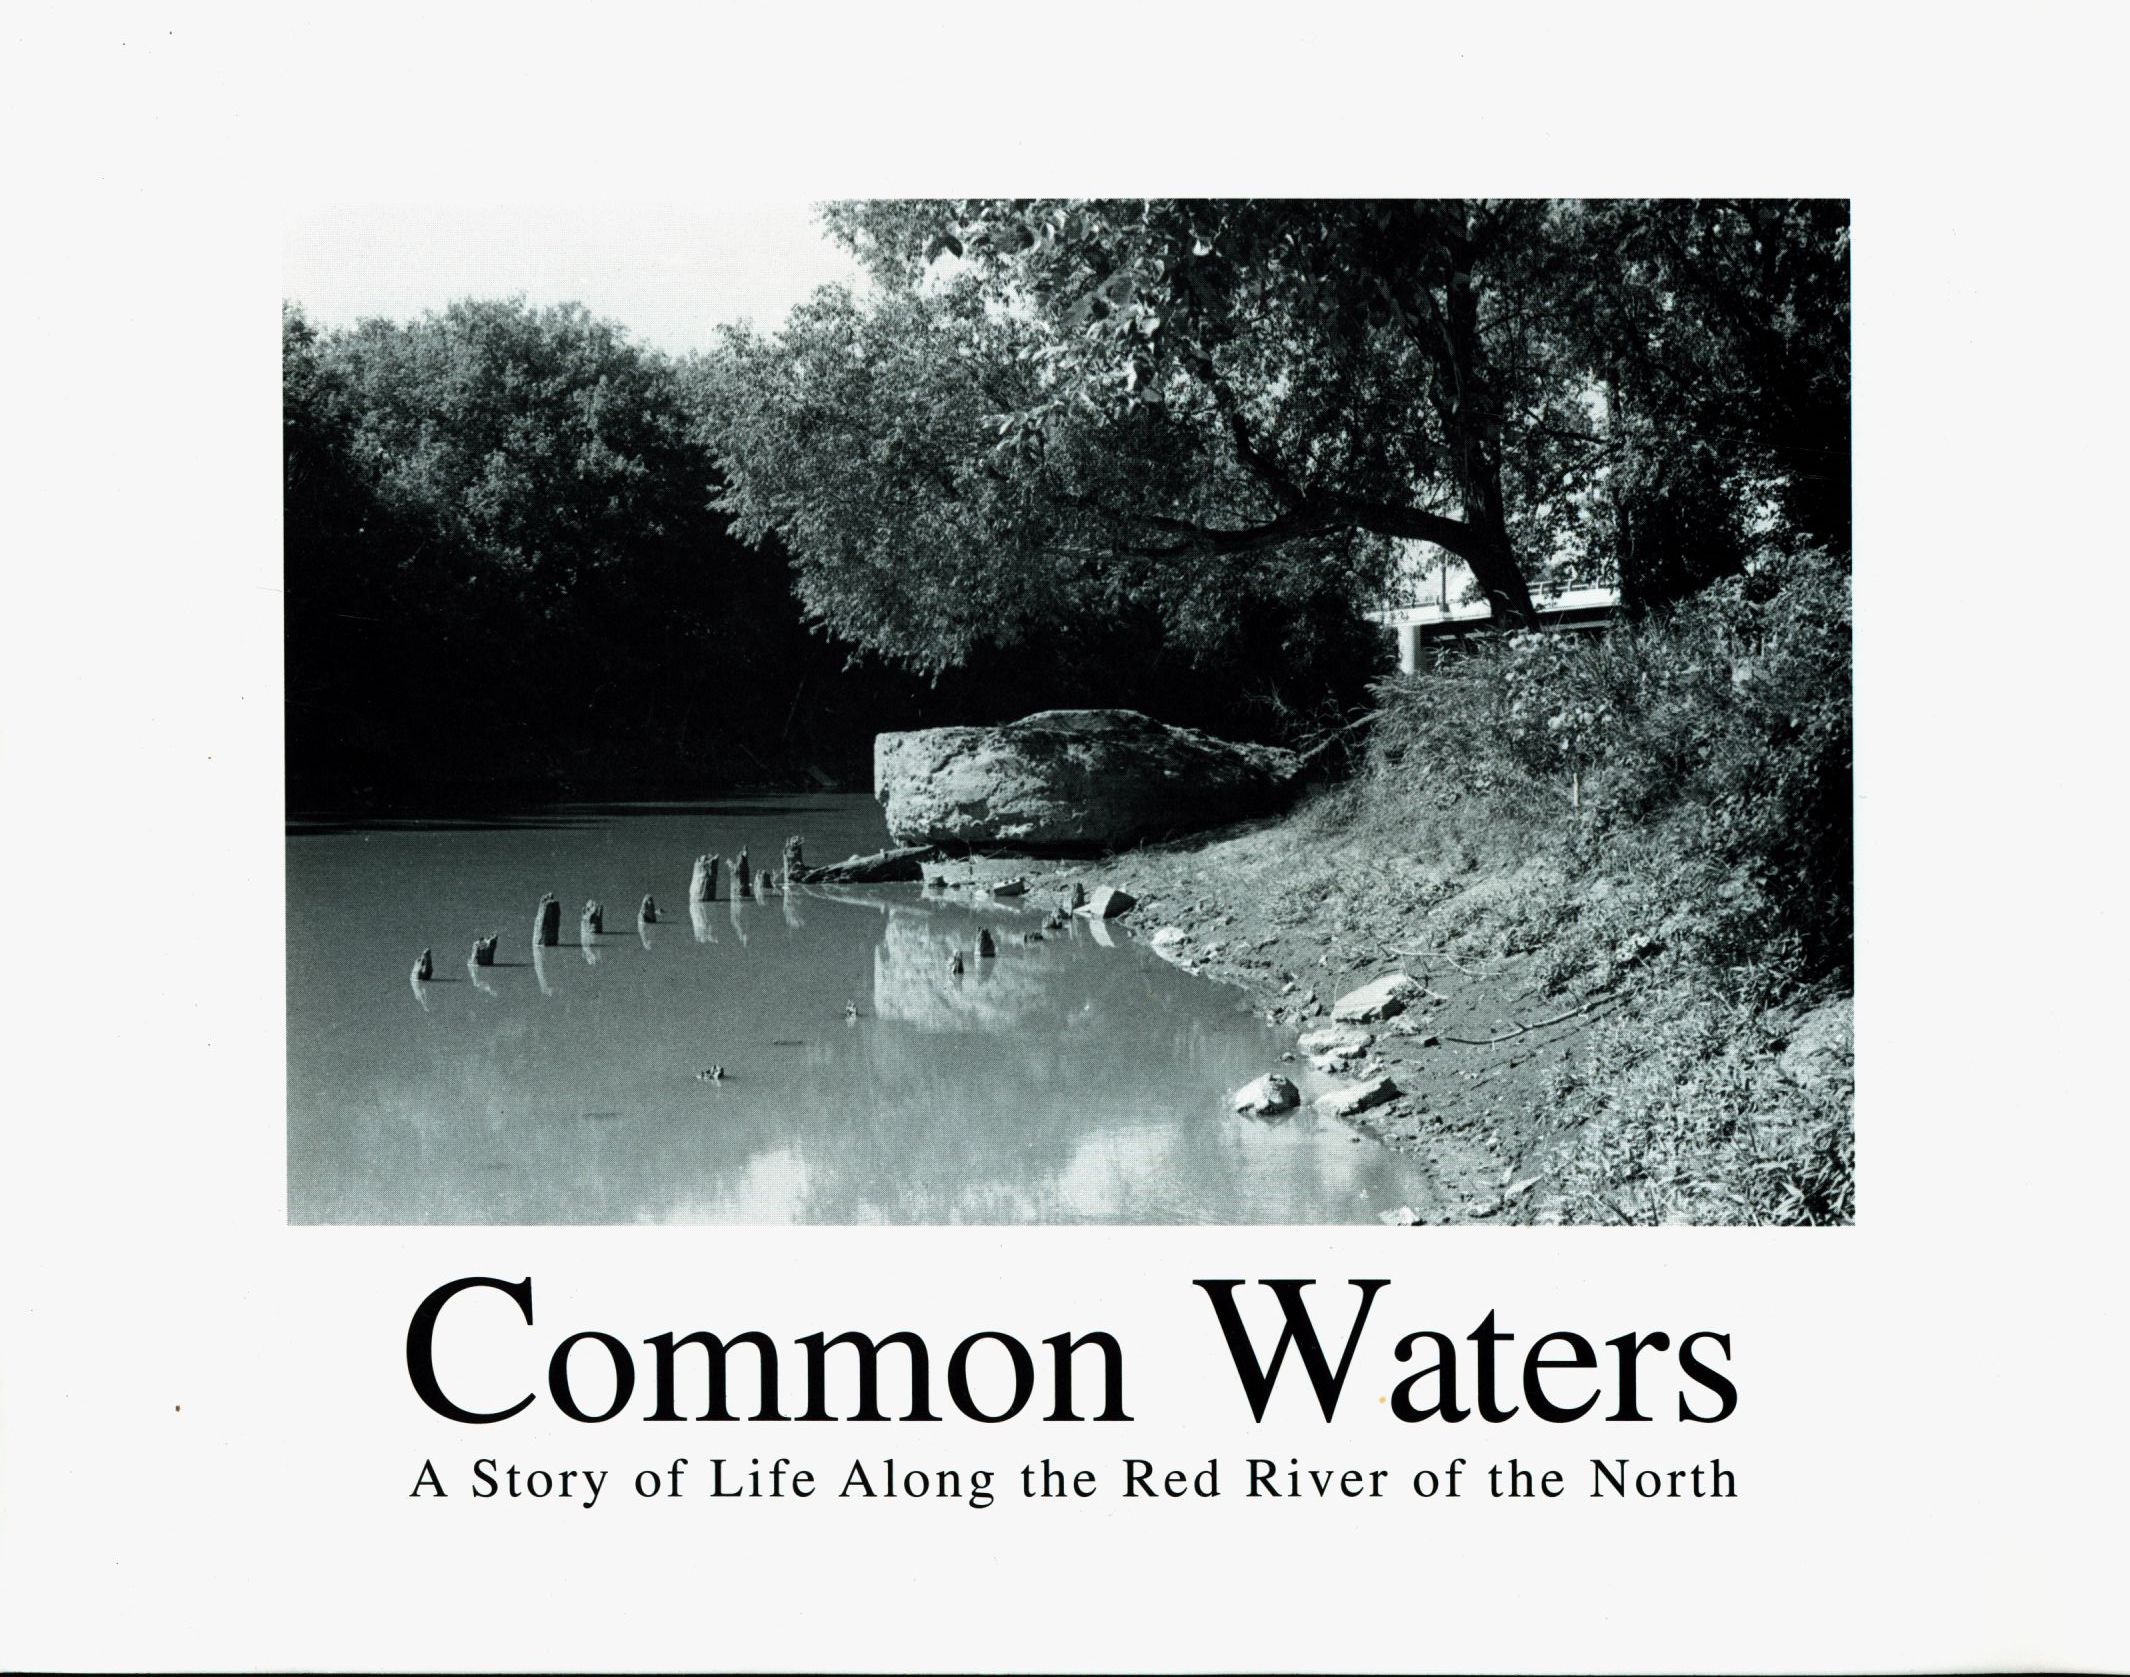 Common Waters - A Story of Life Along the Red River of the North